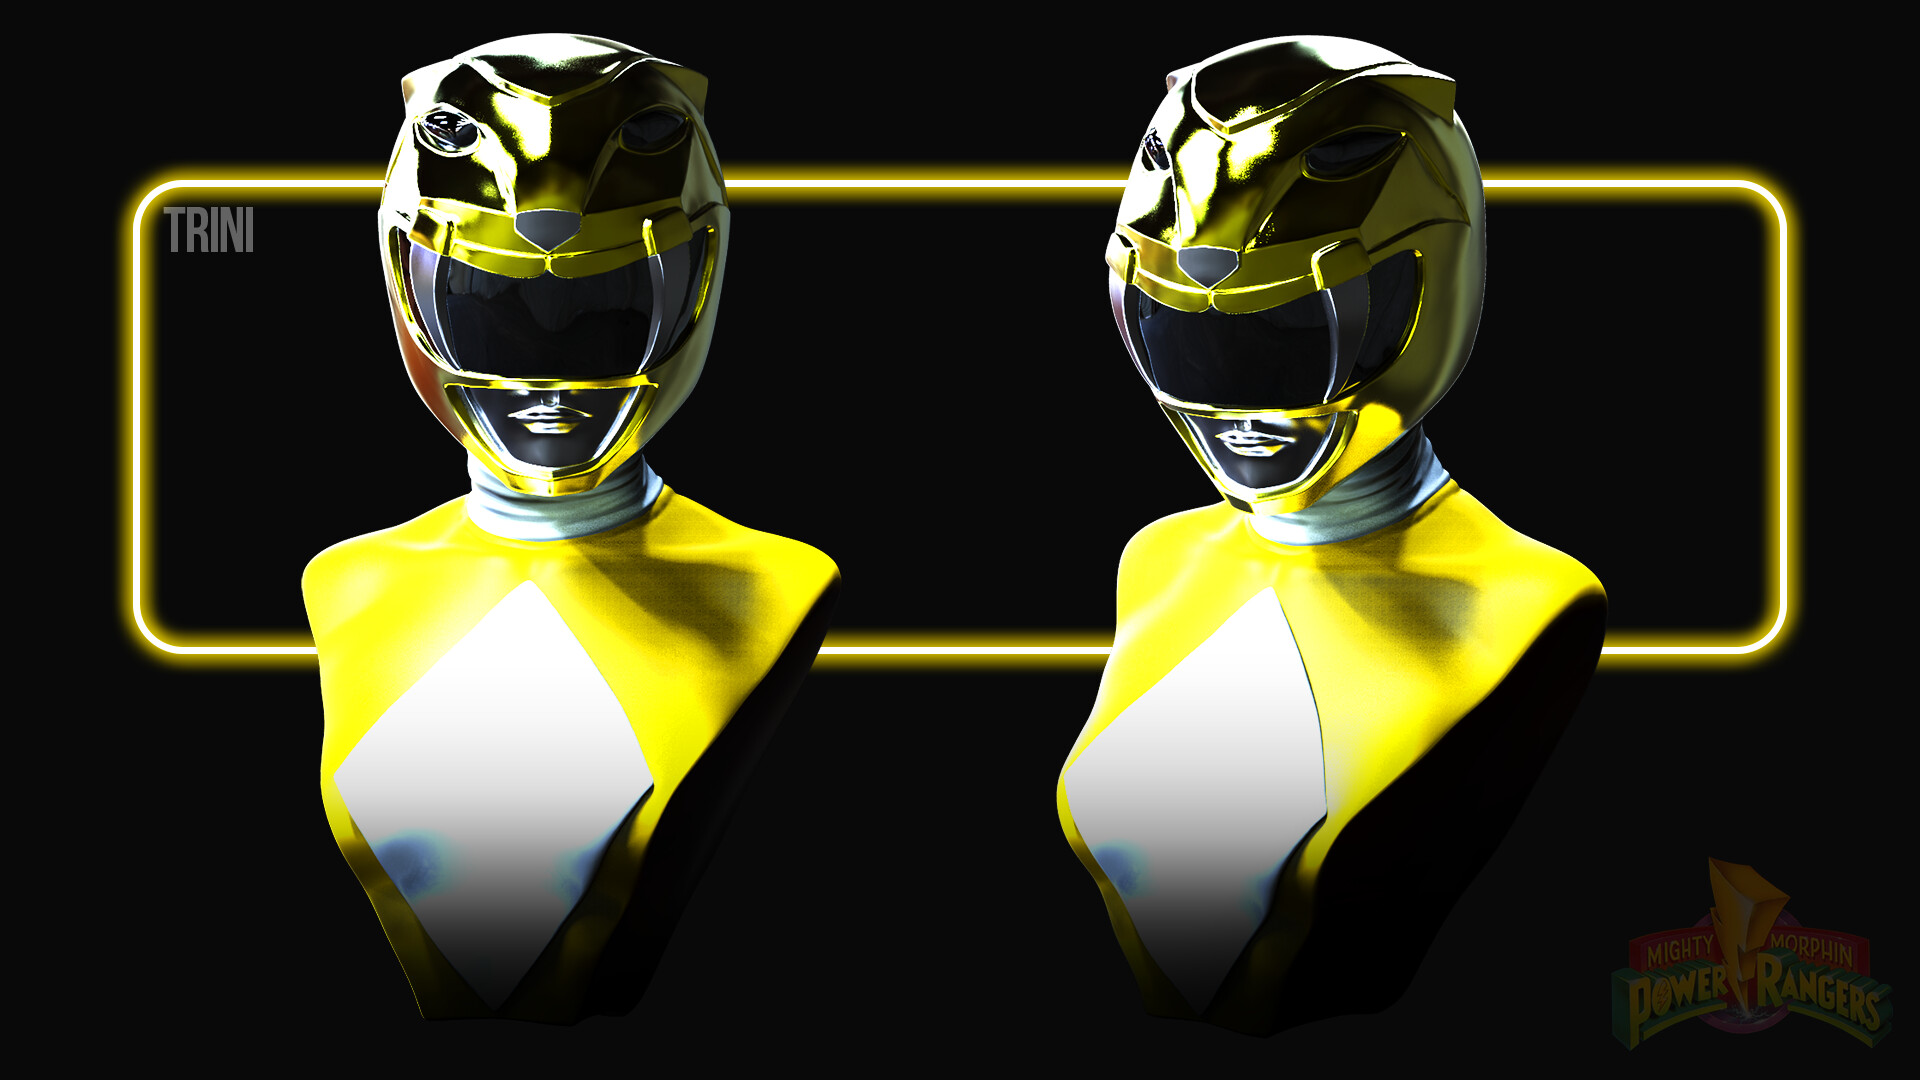 Trini Kwan the Yellow Power Ranger